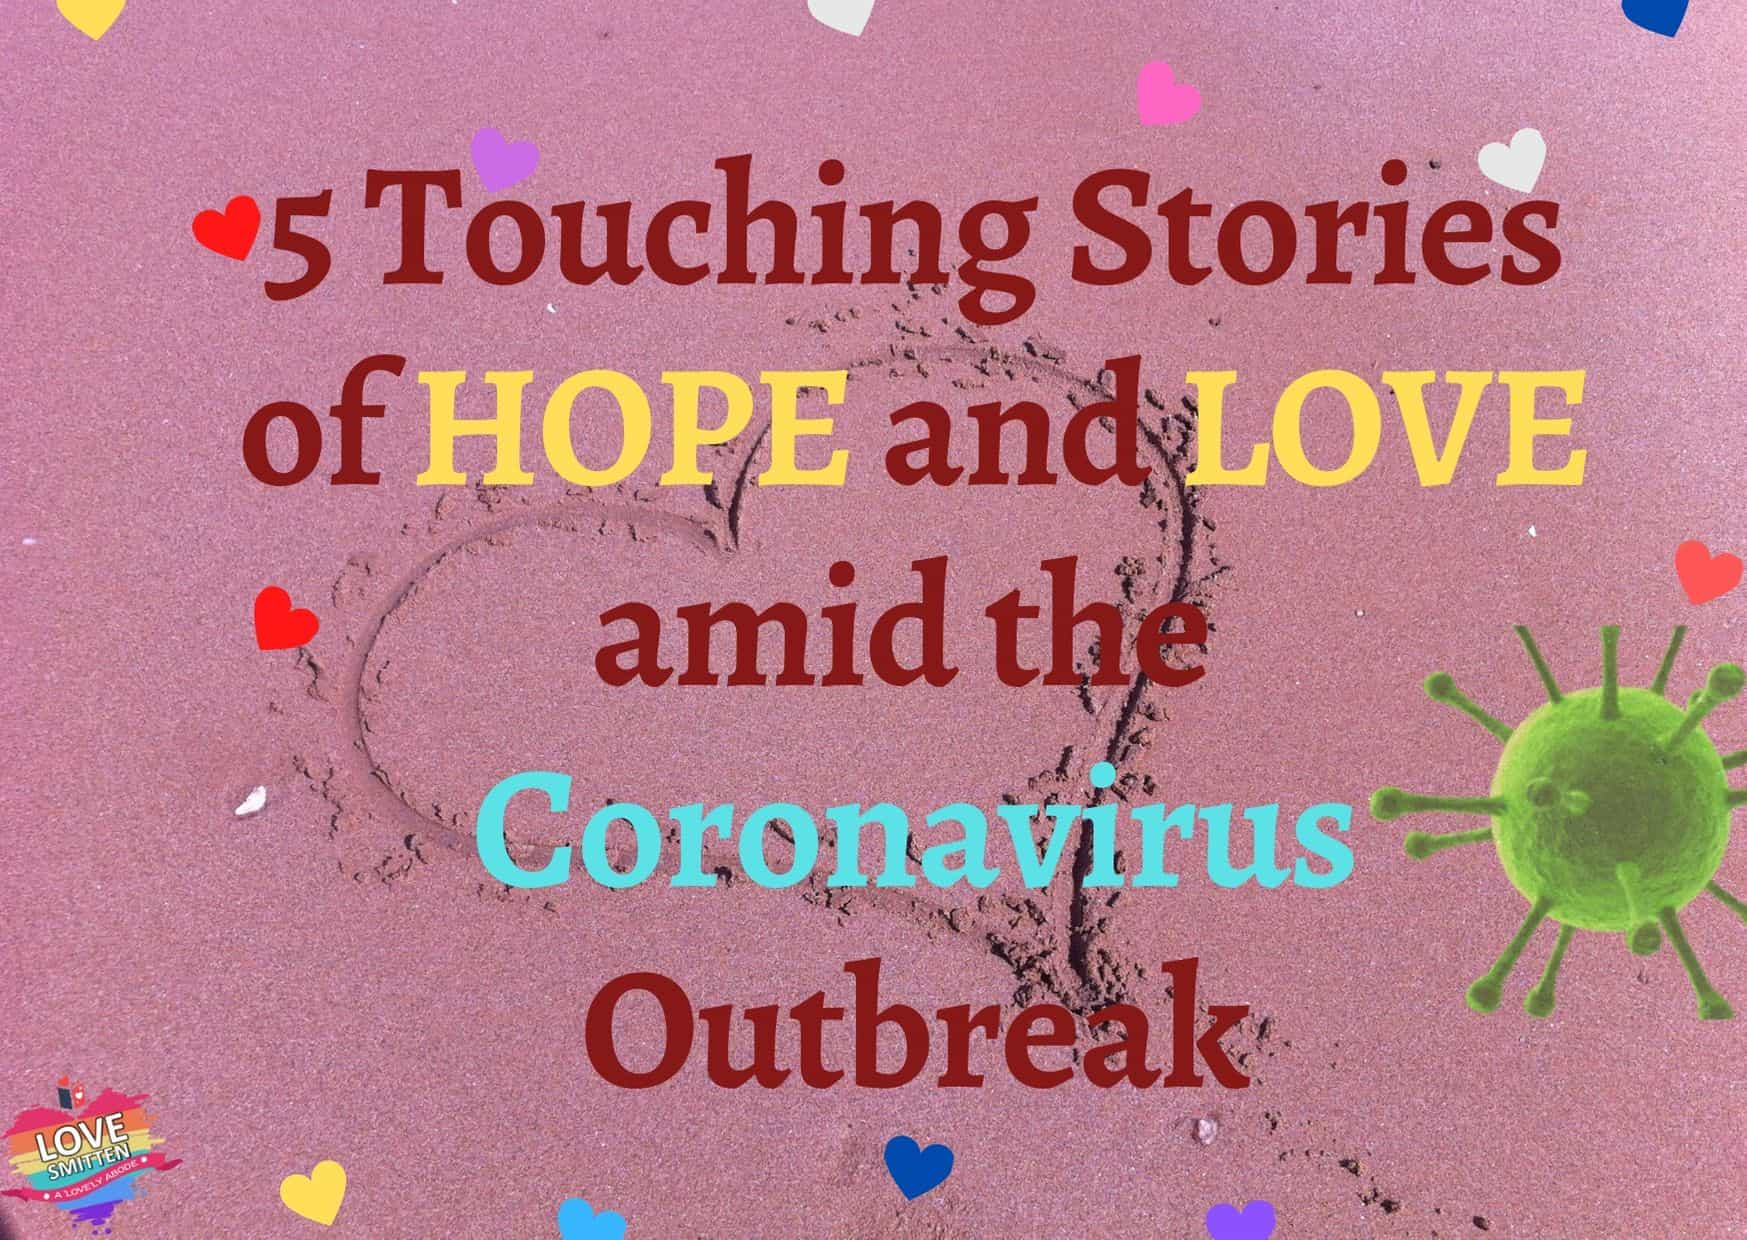 5 Touching Stories of HOPE and LOVE amid the Coronavirus Outbreak